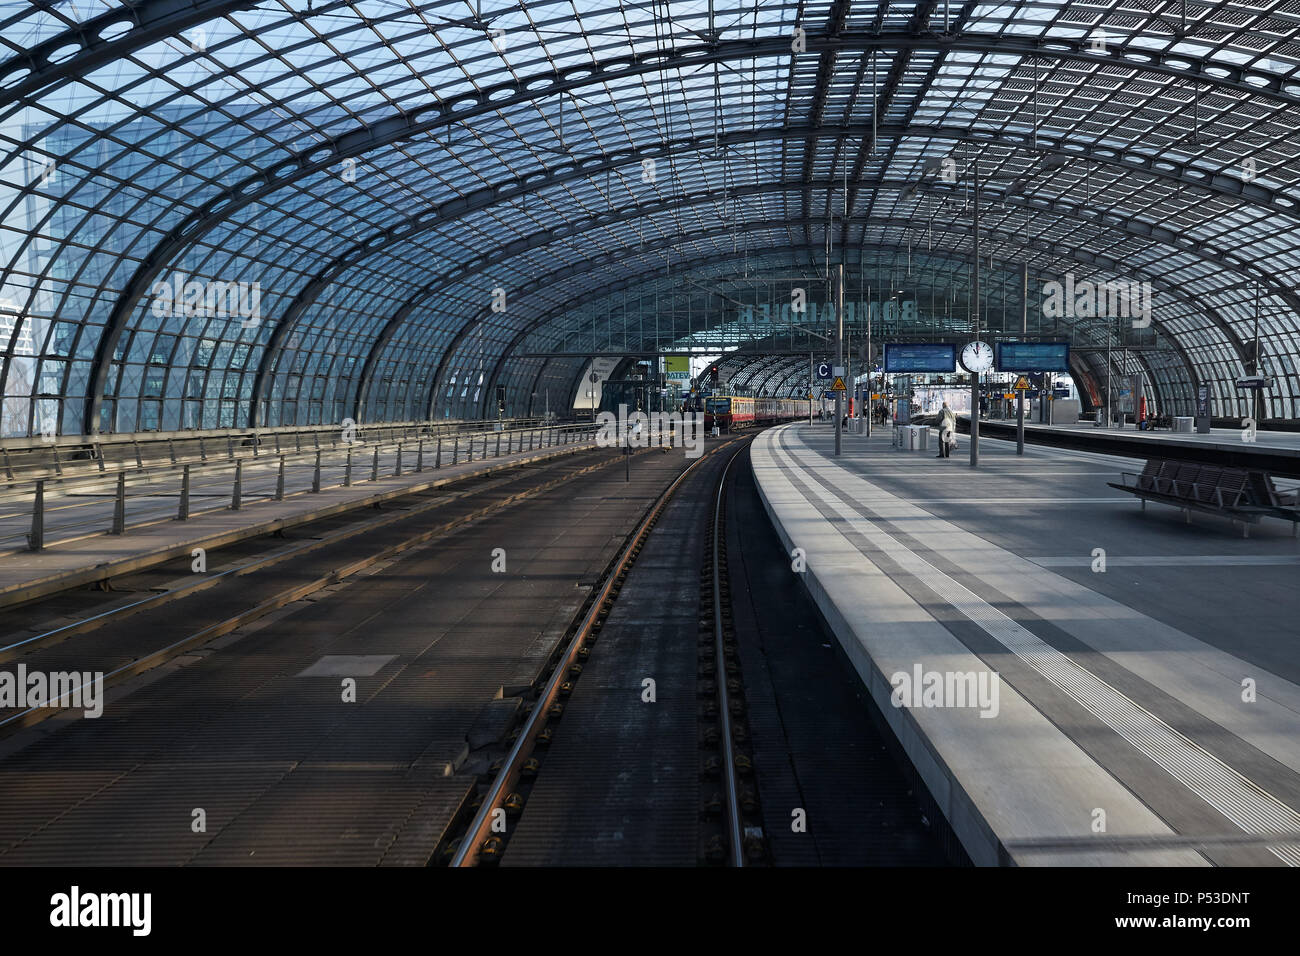 Berlin, Germany - View from the driver's station of a regional train at Berlin main station at the station crossing. - Stock Image